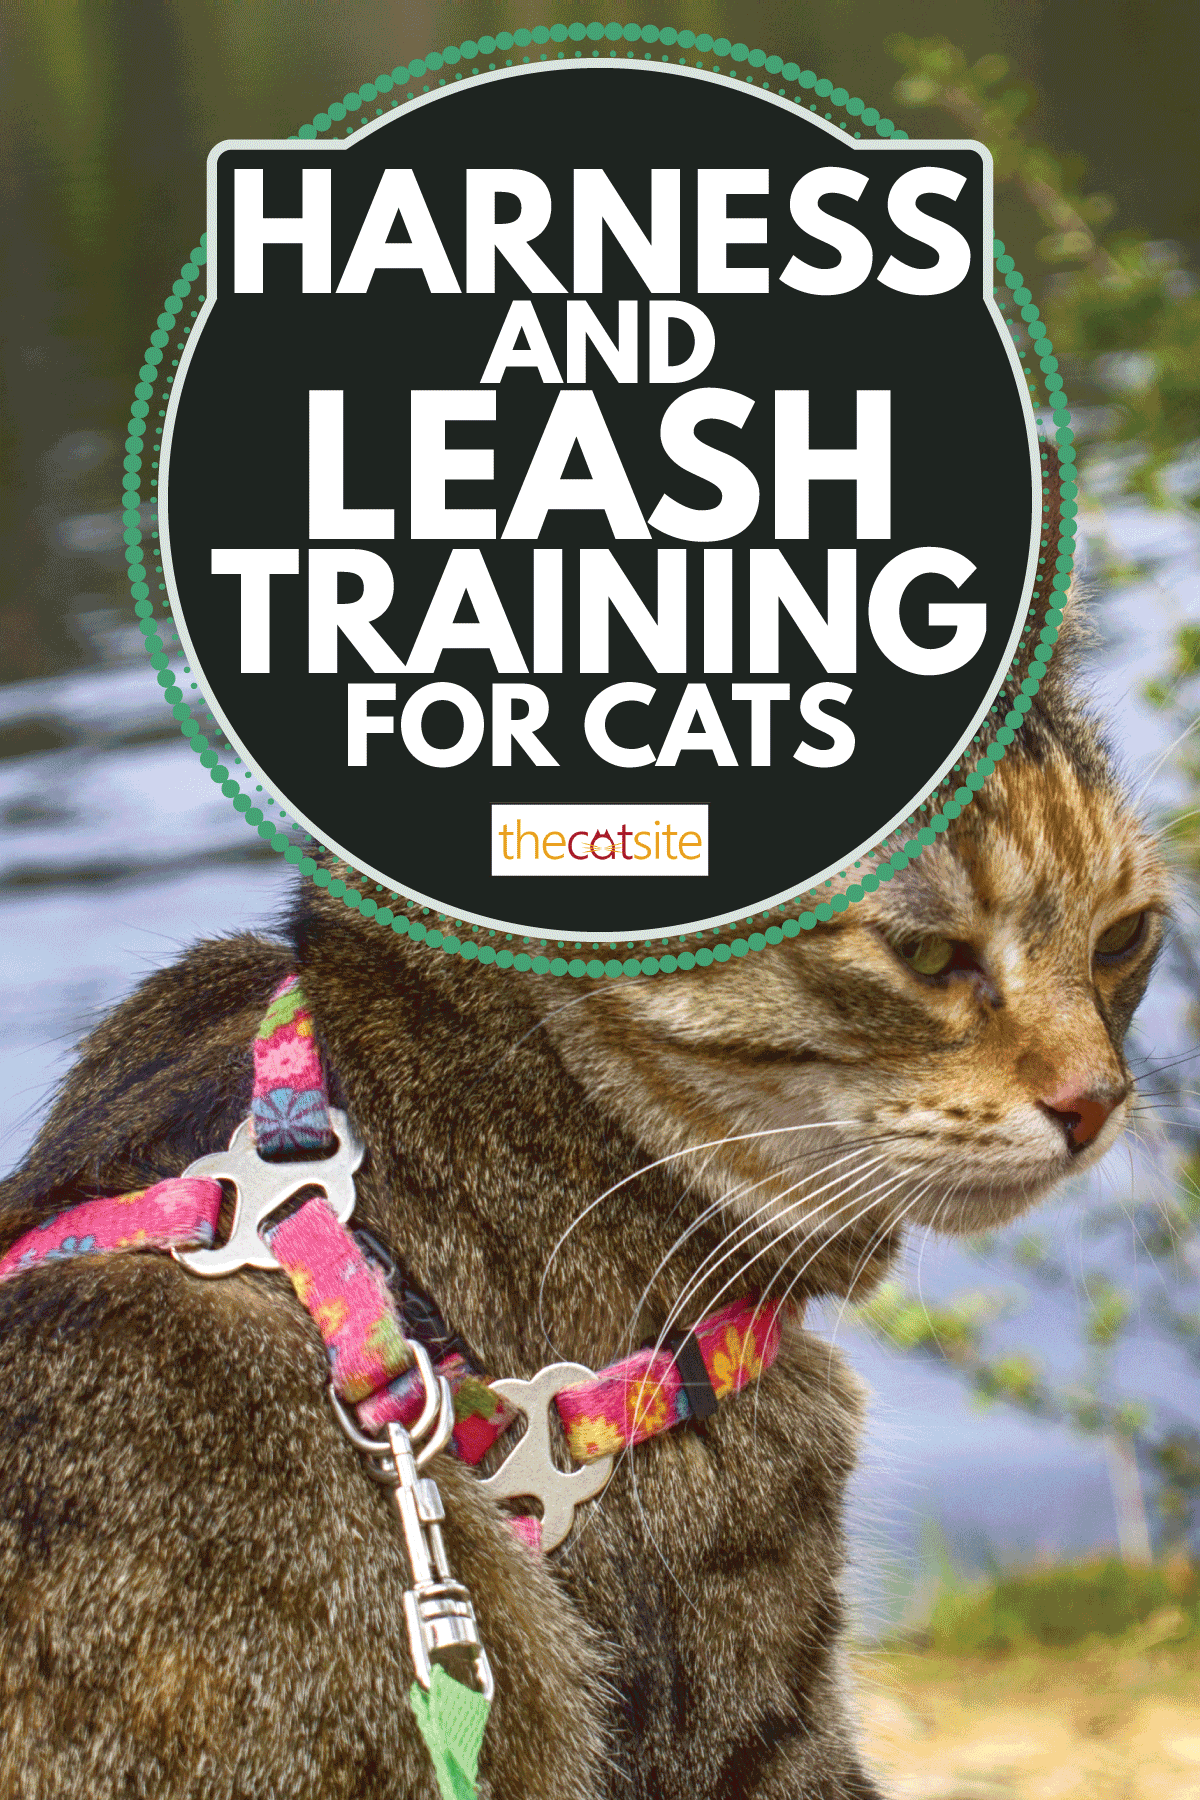 Pet cat for walk in wild. Leash and harness for cats, Amid the rivers and forests. Harness And Leash Training For Cats